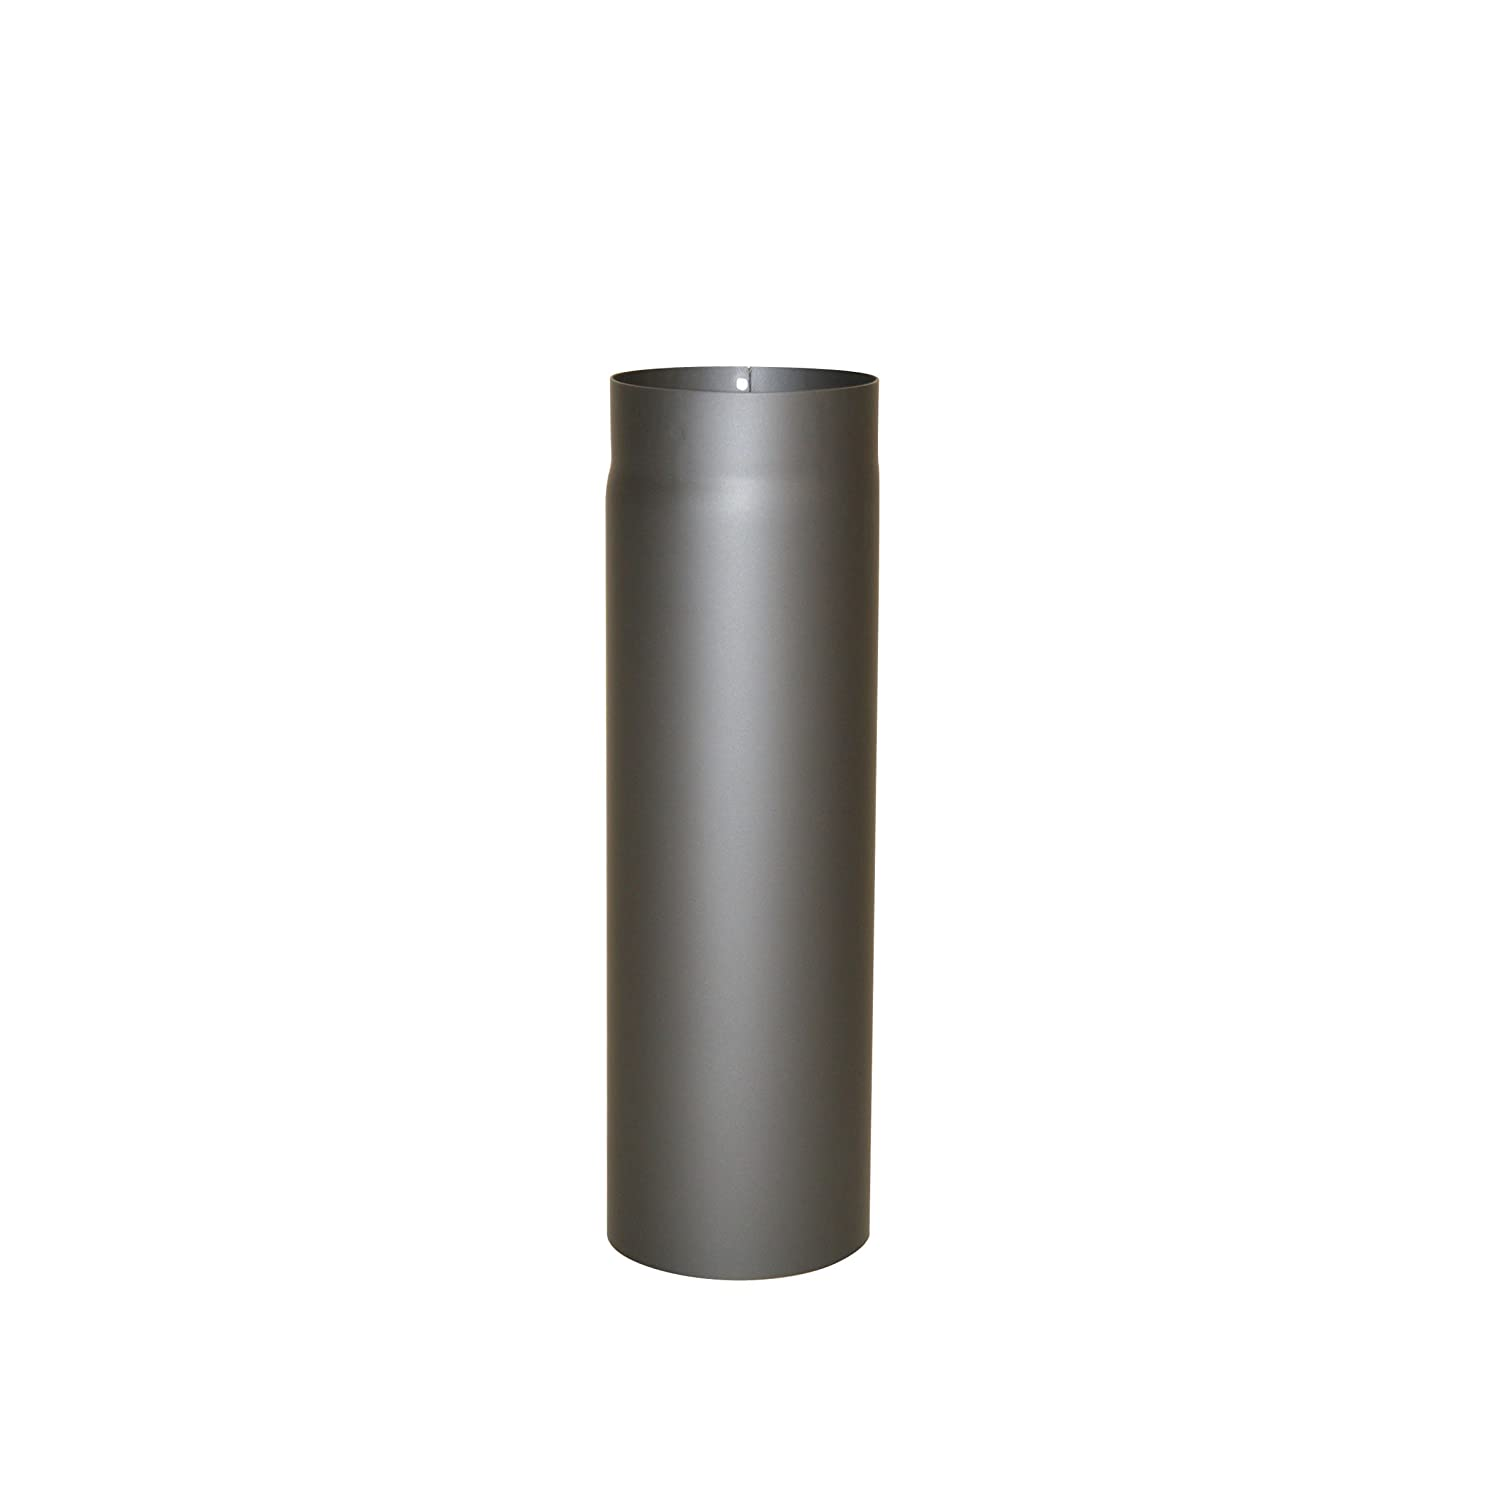 Kamino - Flam Ø 120 mm Steel Stove Pipe, Heat Resistant Senotherm Coating Flue Pipe for Stoves, approx. 500 mm Straight Length Chimney Pipe, Single Wall Pipe EN 1856-2 Standard, Cast Iron Grey 331721